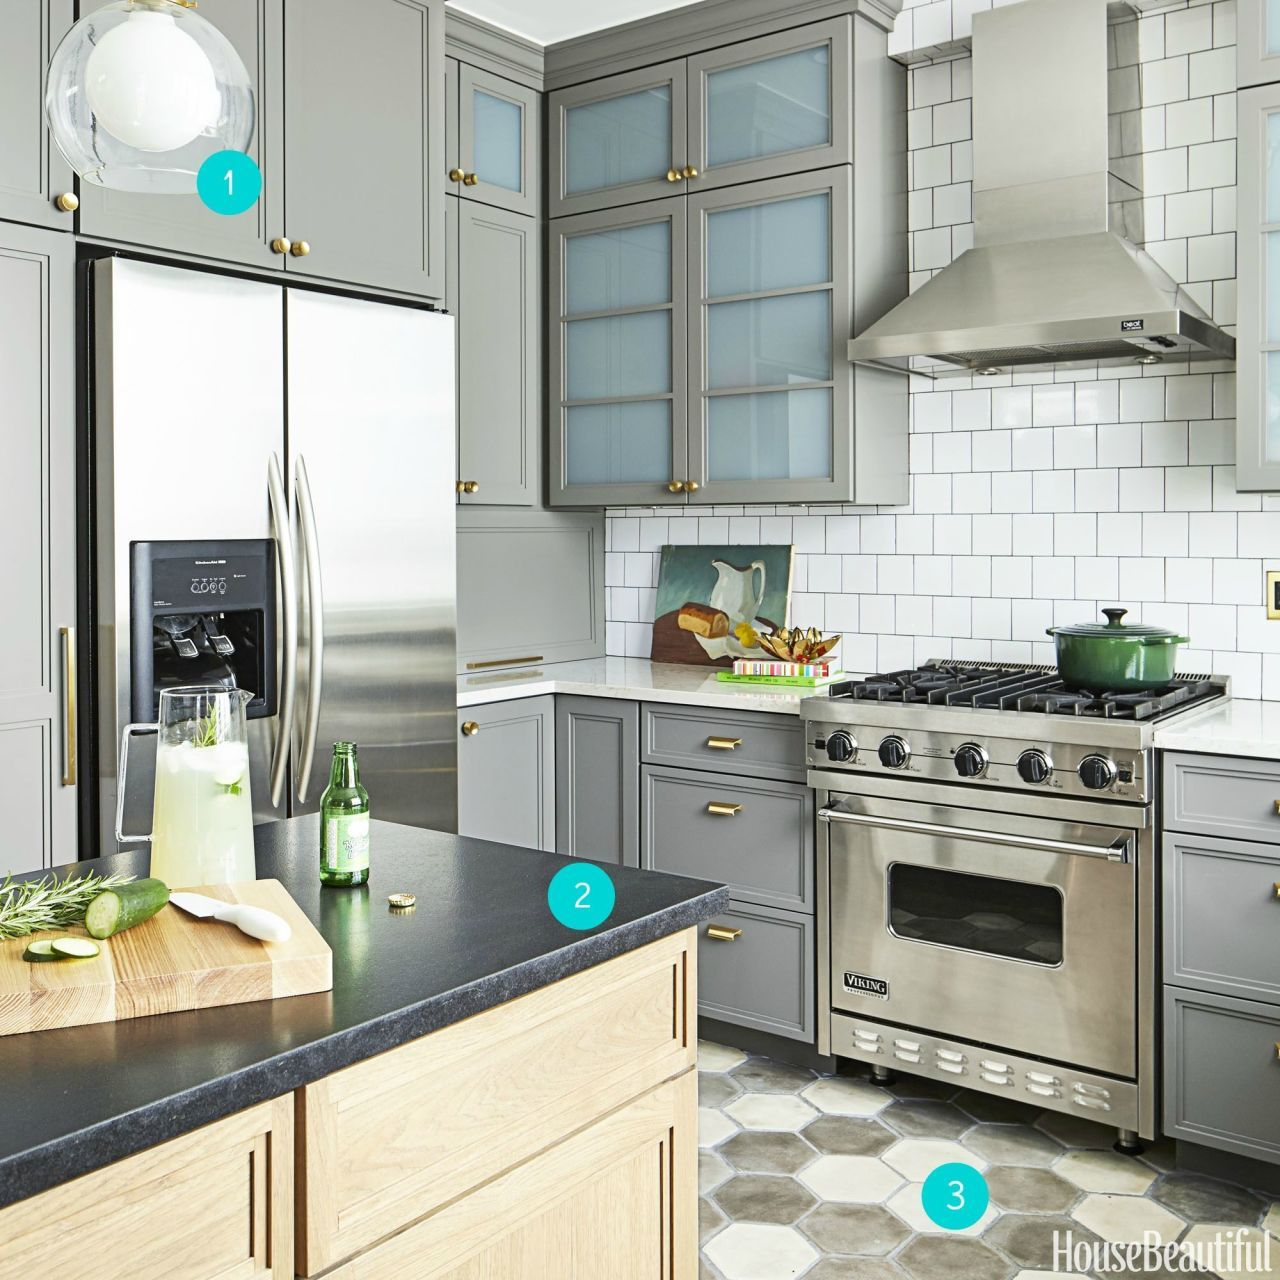 Kitchen Impossible Idee: A Chicago Kitchen In A Muted Palette